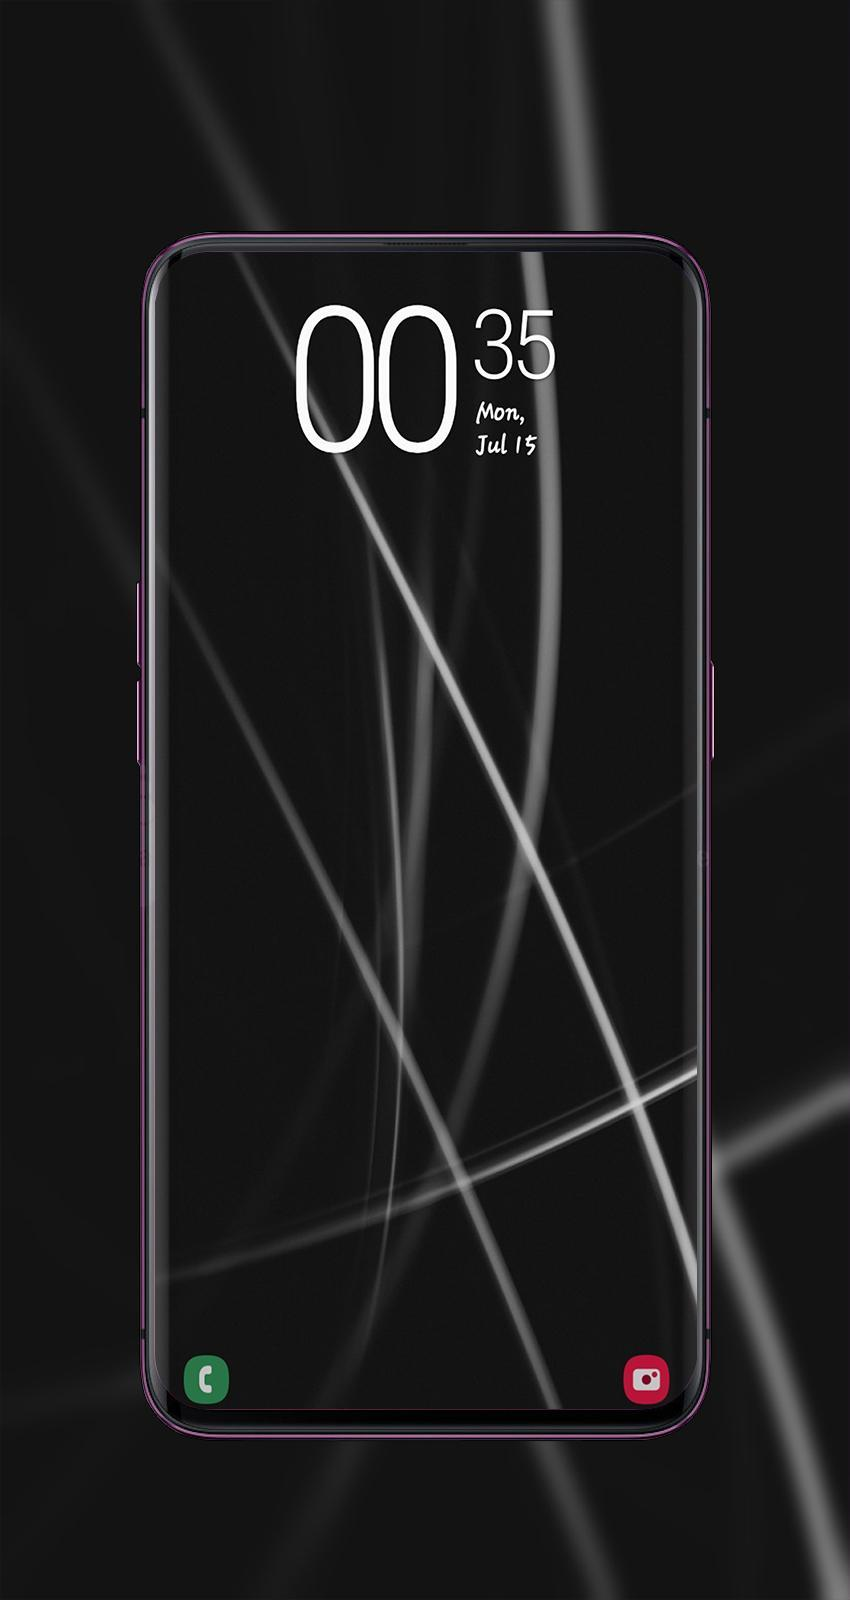 Black Wallpapers Backgrounds 2020 Hd 4k For Android Apk Download